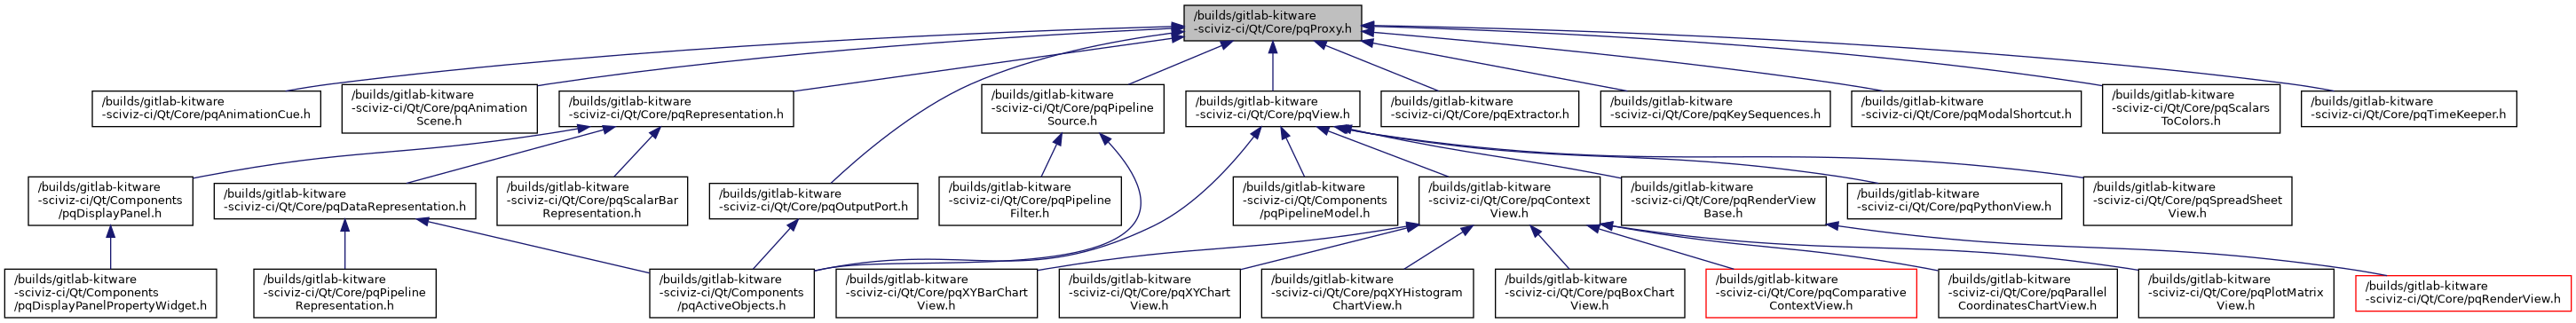 ParaView: /home/kitware/dashboards/buildbot/paraview_release